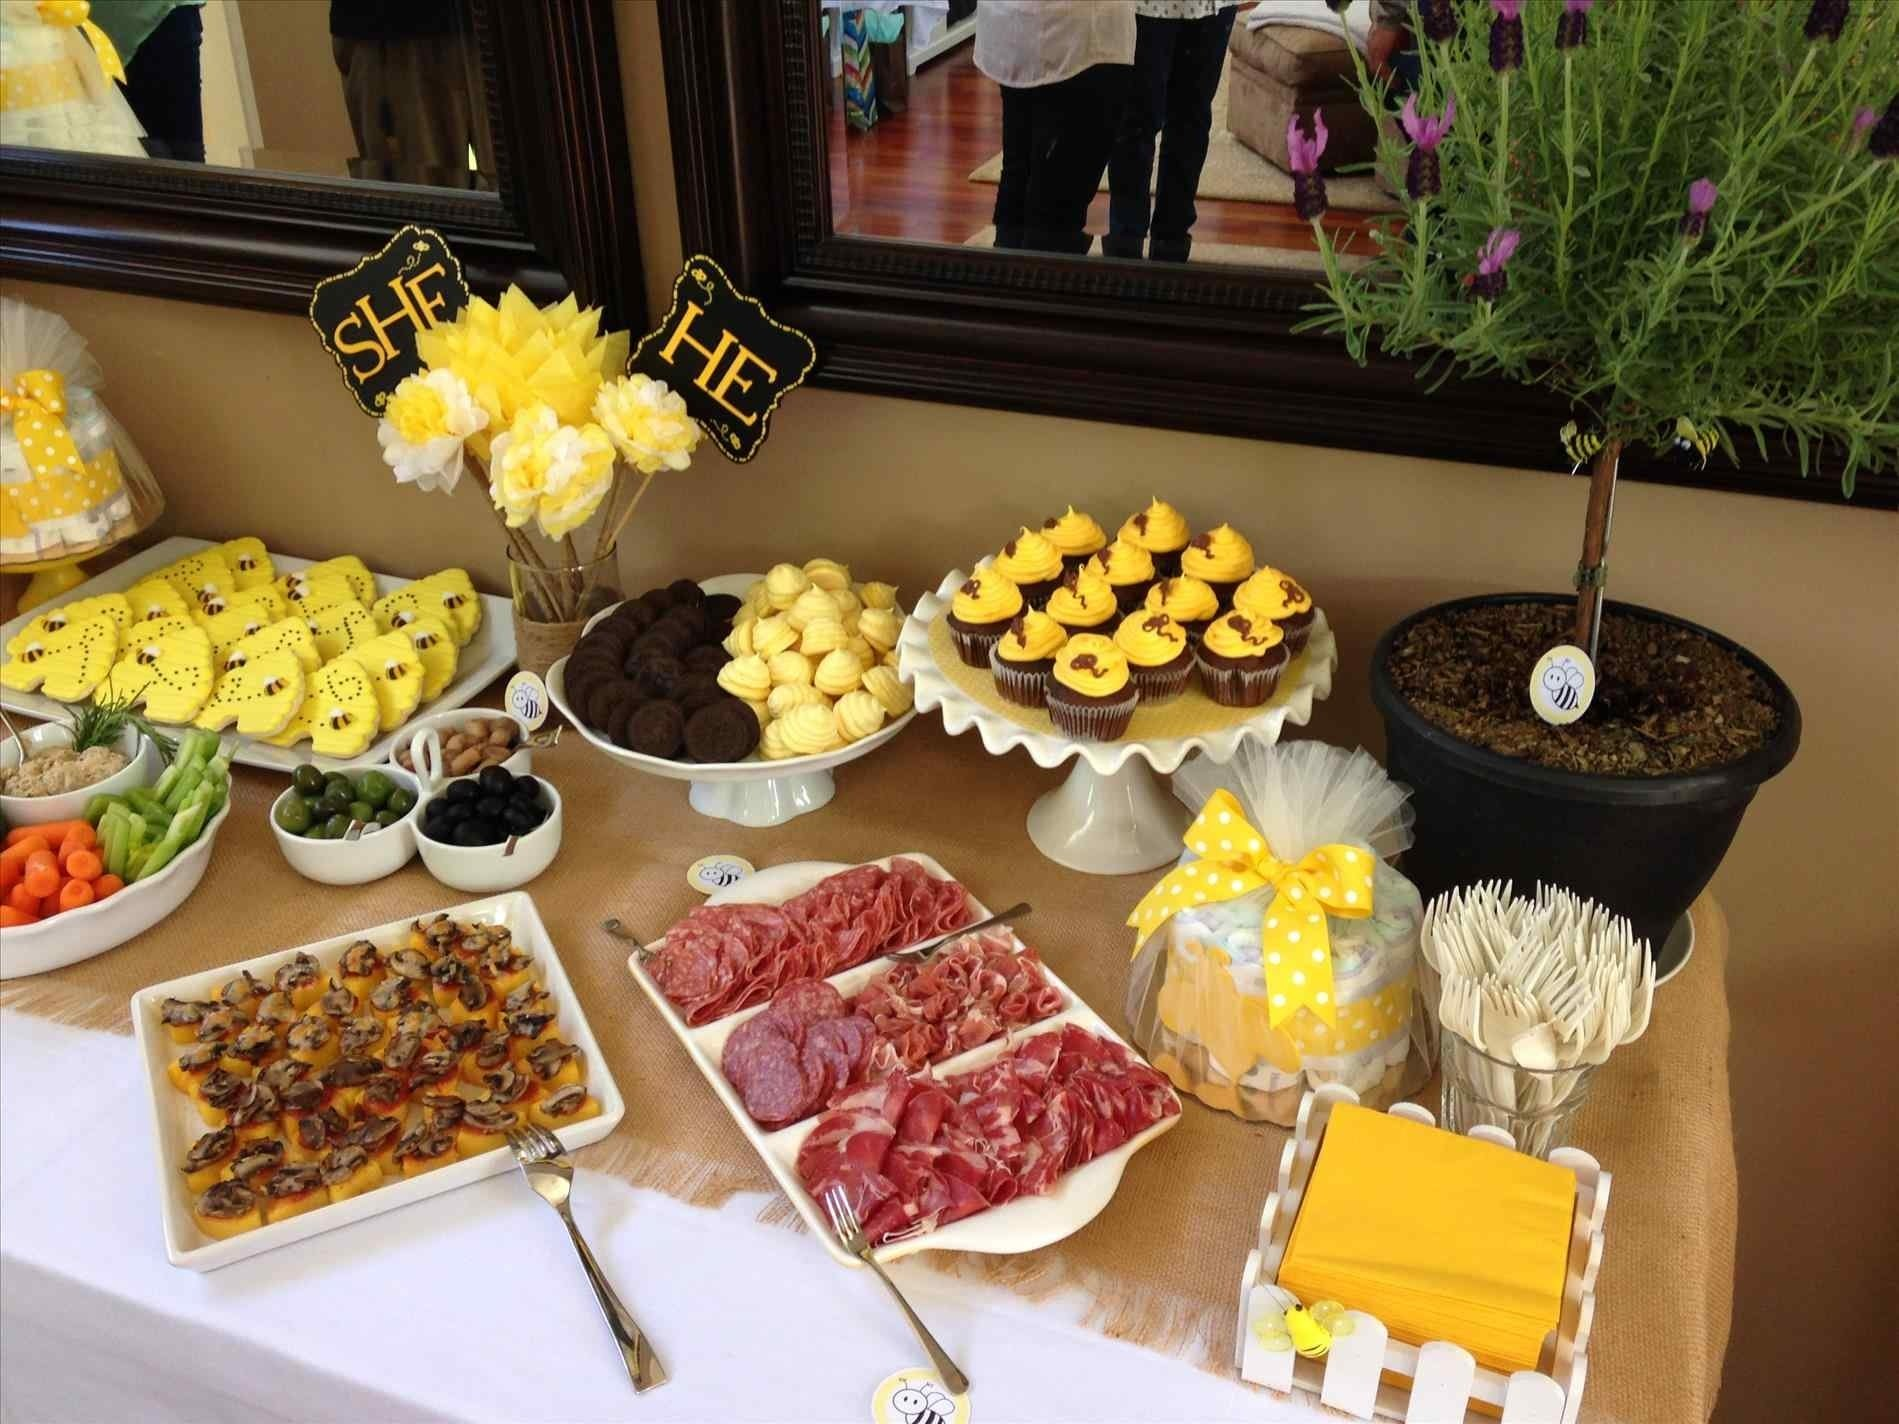 10 Gorgeous Baby Shower Food And Drink Ideas baby shower food and drinks shower ideas for a girl food drink 2021